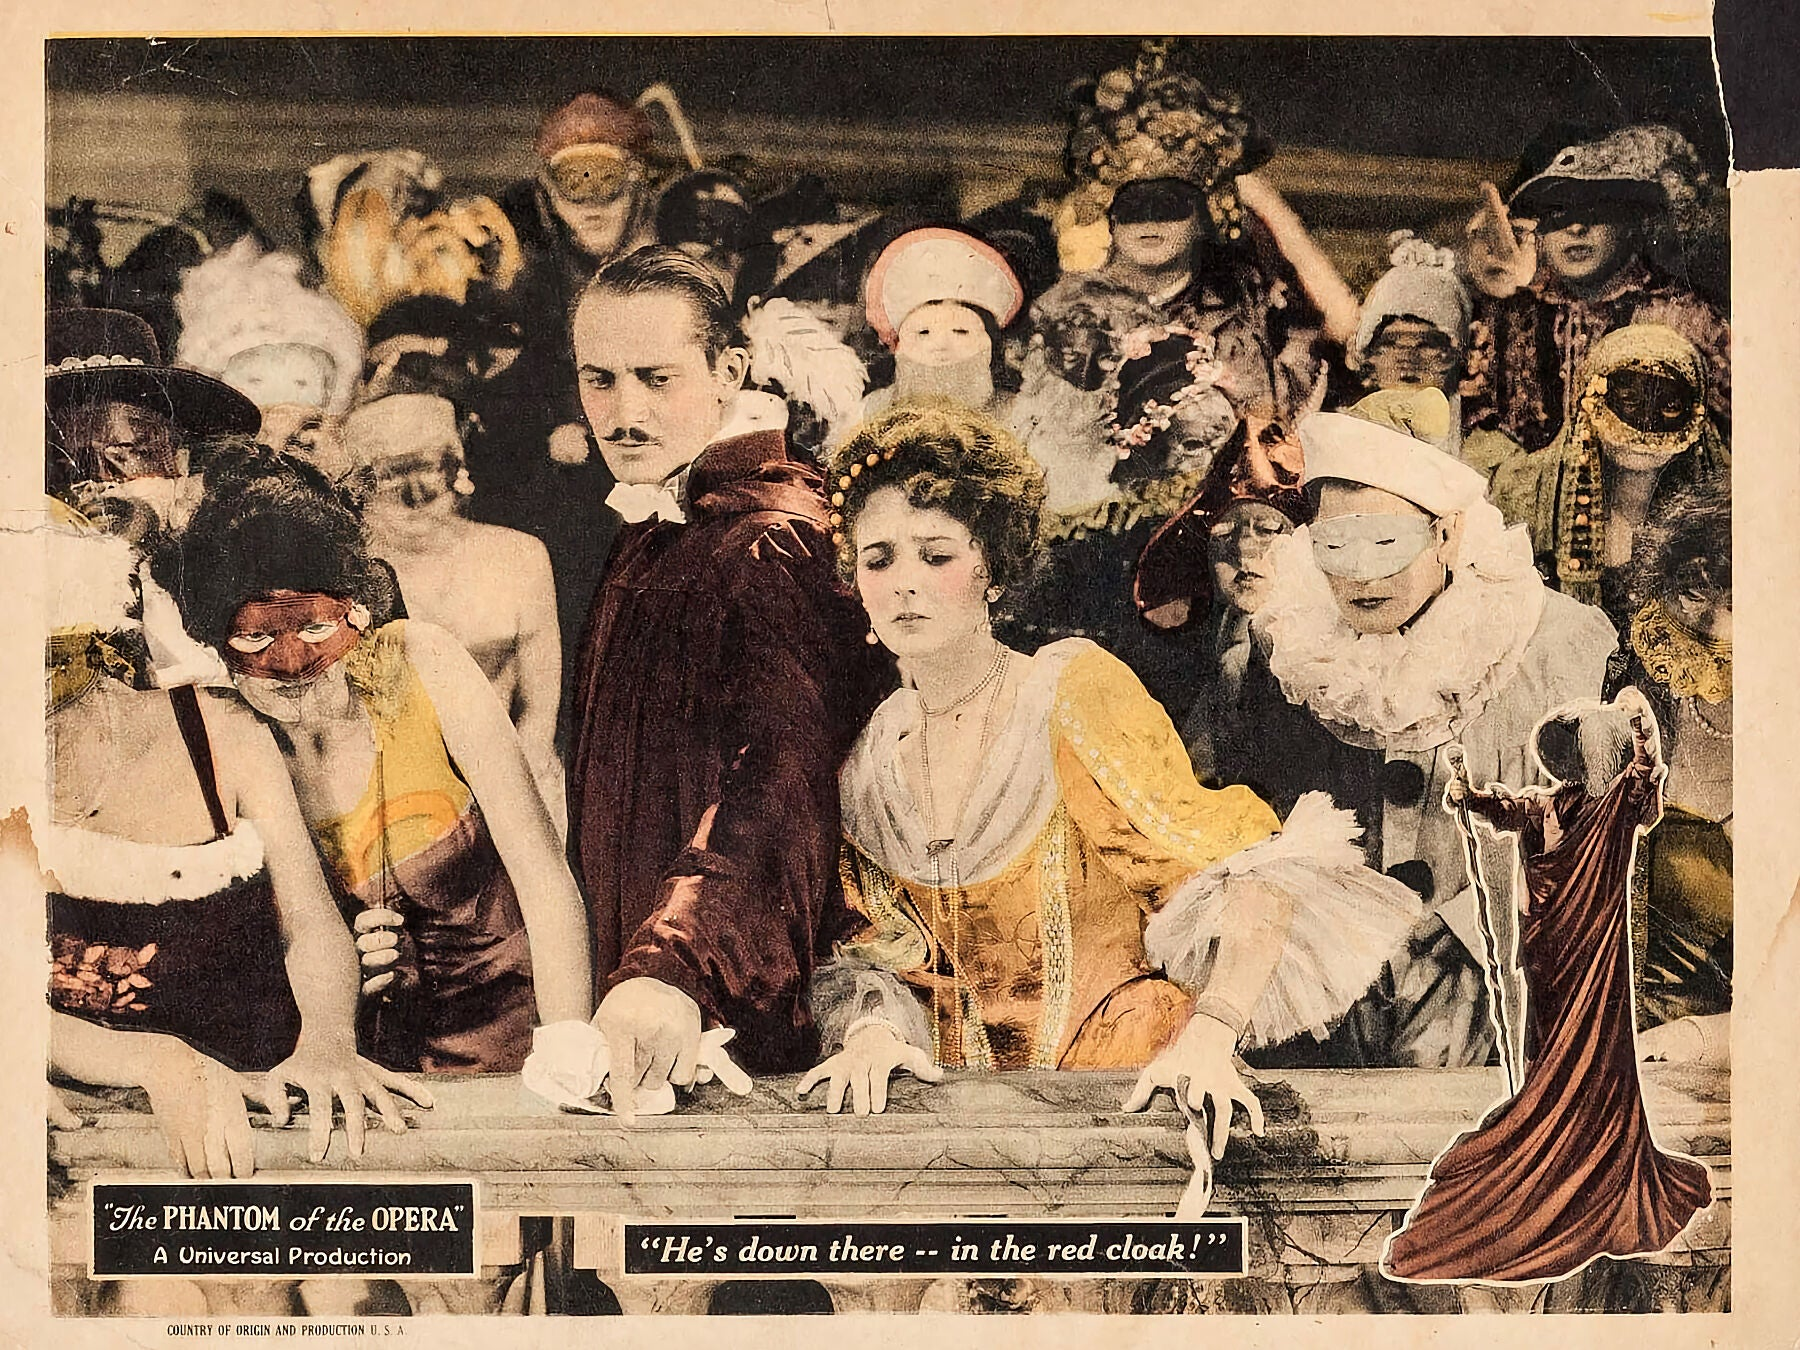 The Phantom of the Opera, Lobby Card - 1925